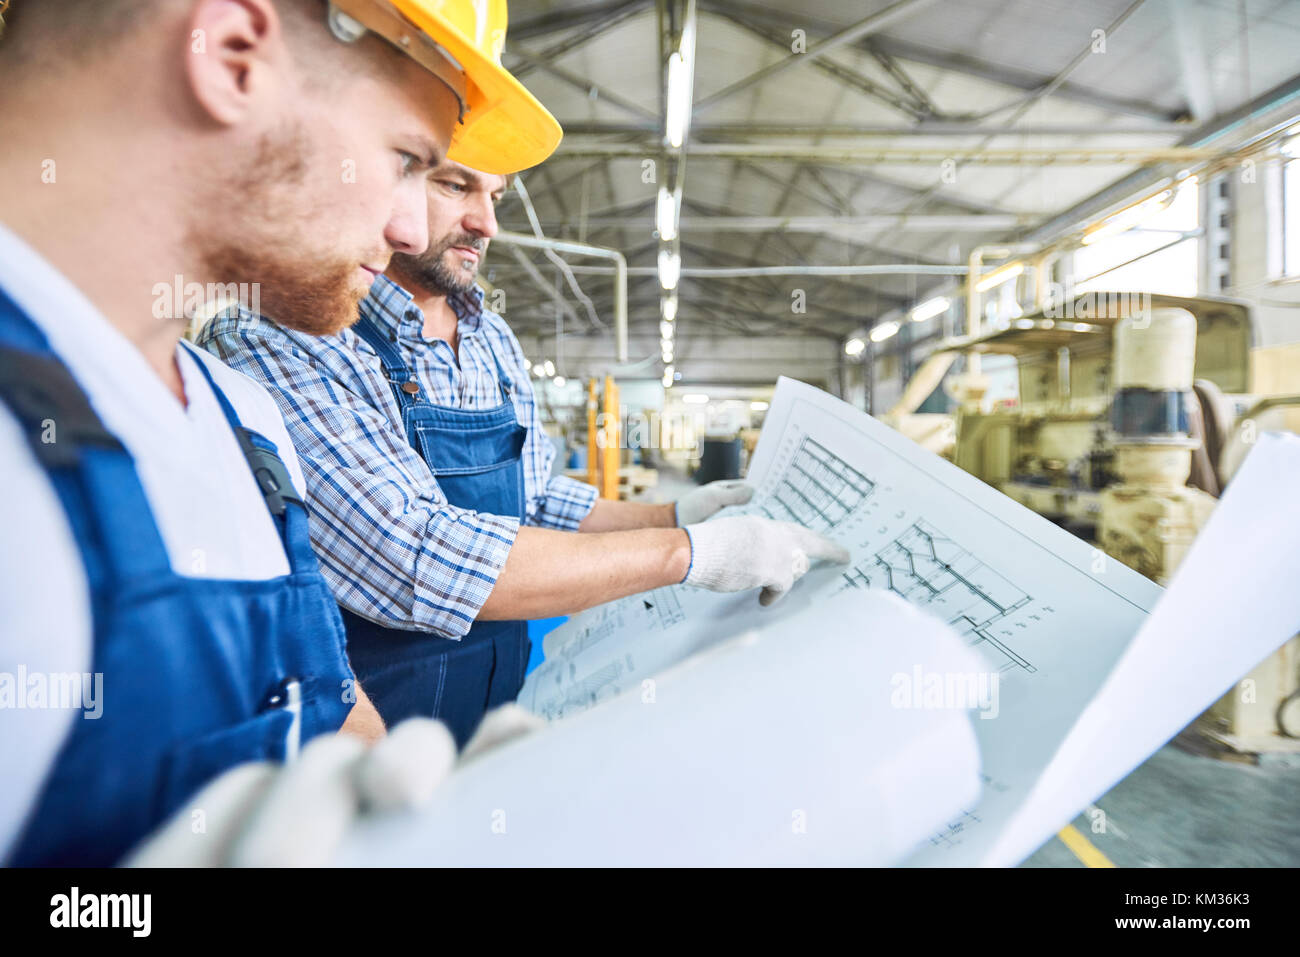 Construction Workers Inspecting Electric Scheme - Stock Image